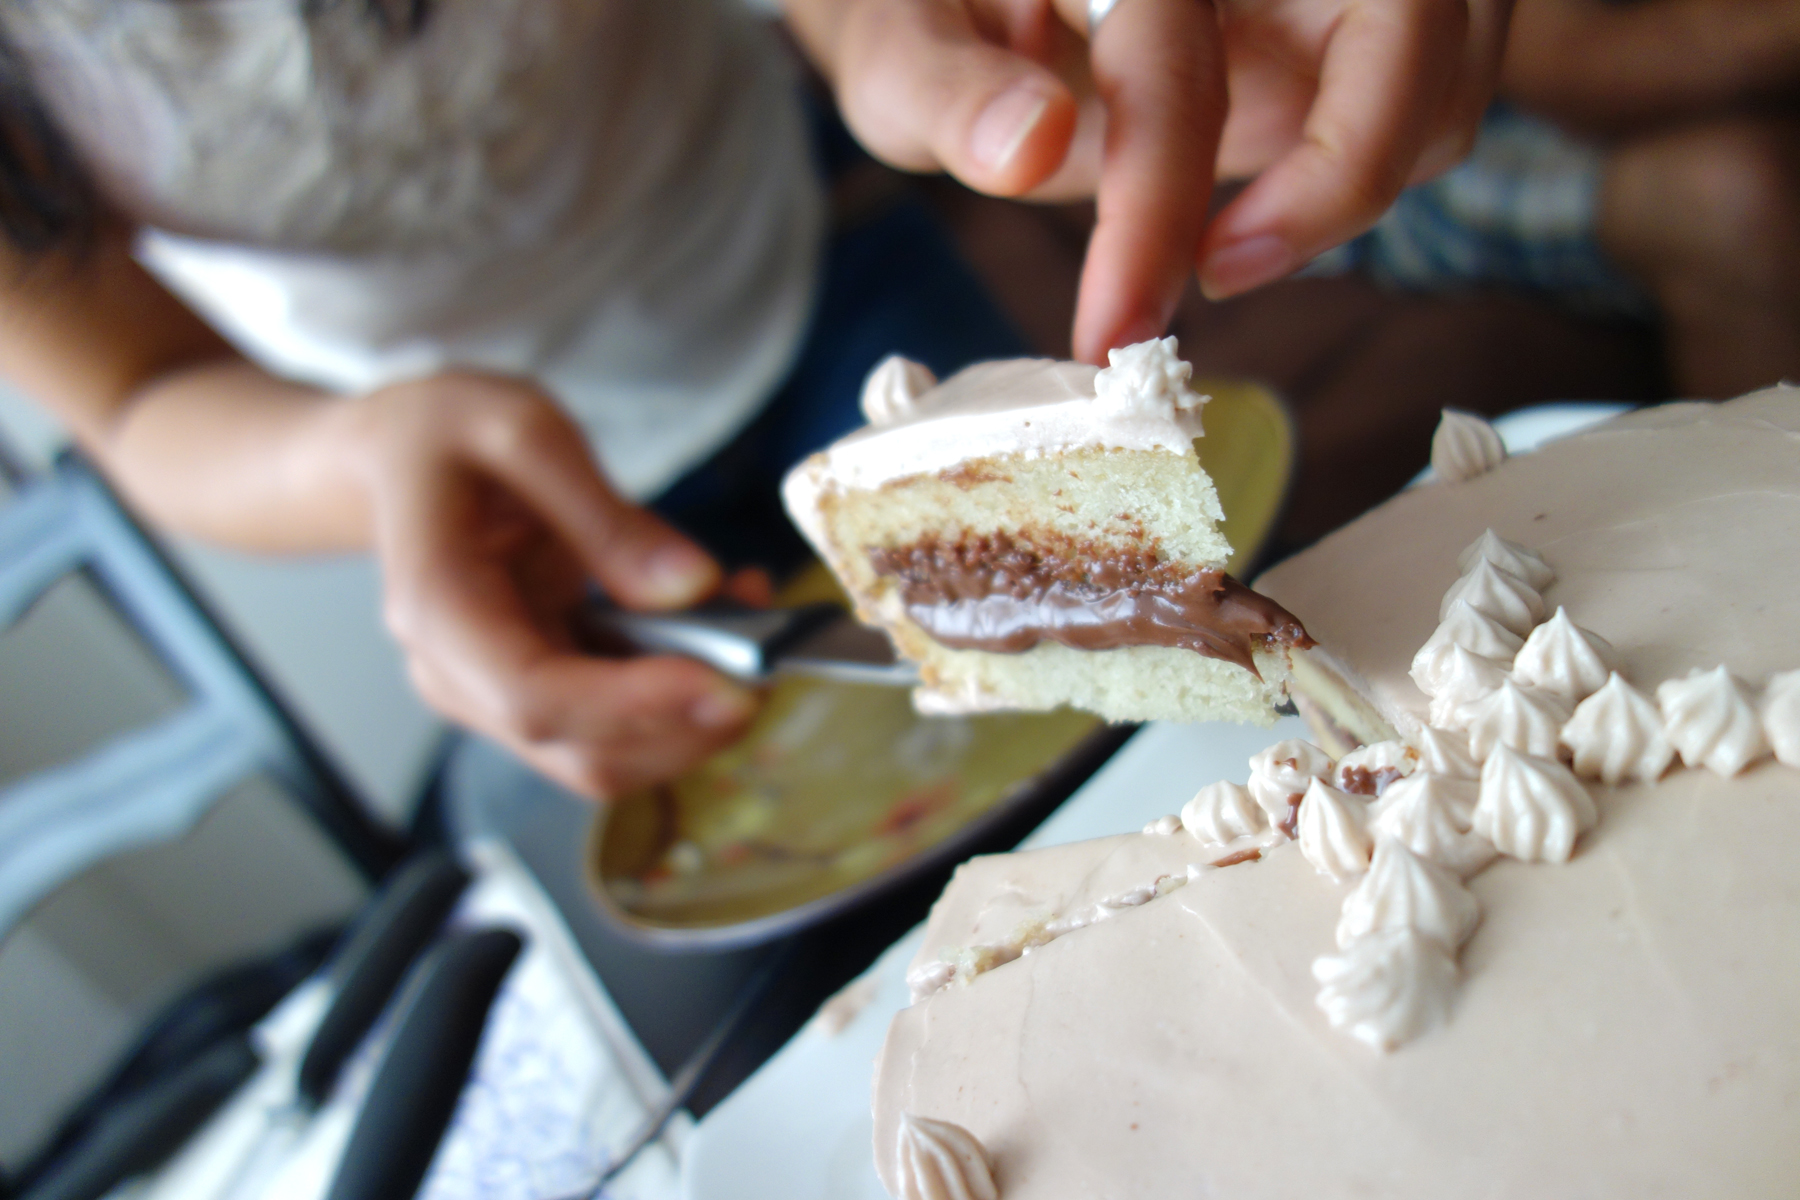 golden_yellow_cake_with_Nutella_filling_and_Nutella_buttercream_frosting.jpg